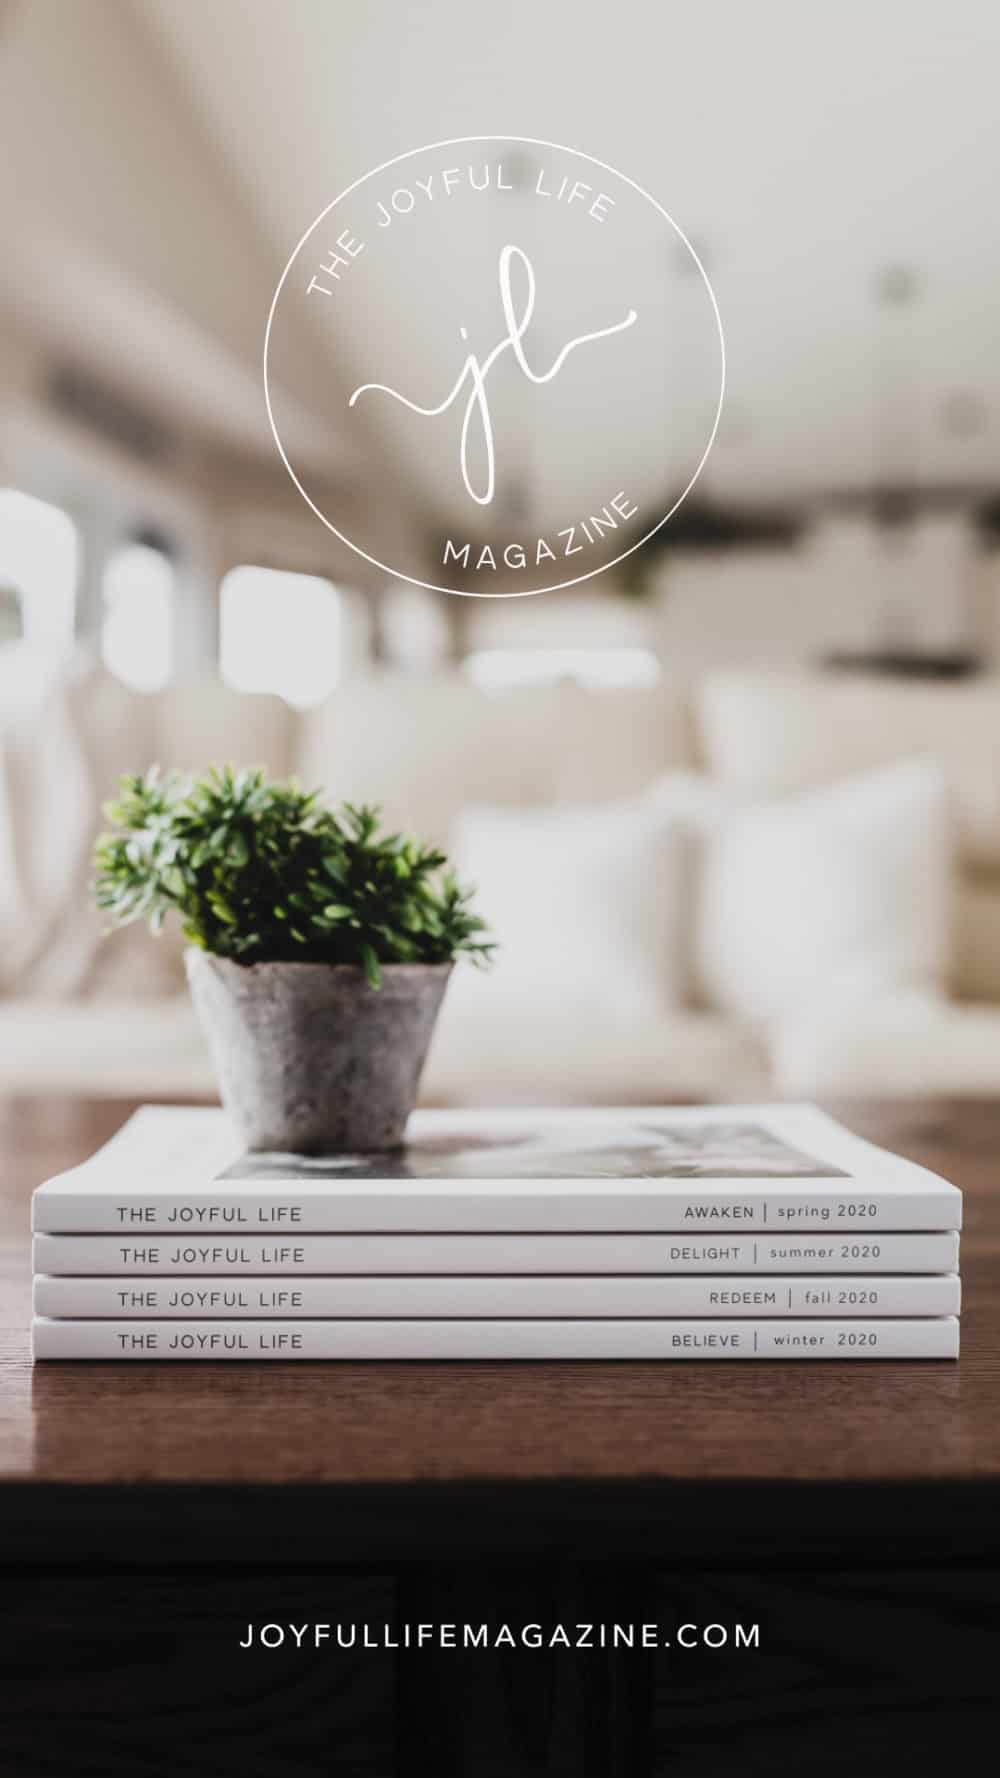 Joyful Life Magazine stacked on wood coffee table with white couch behind